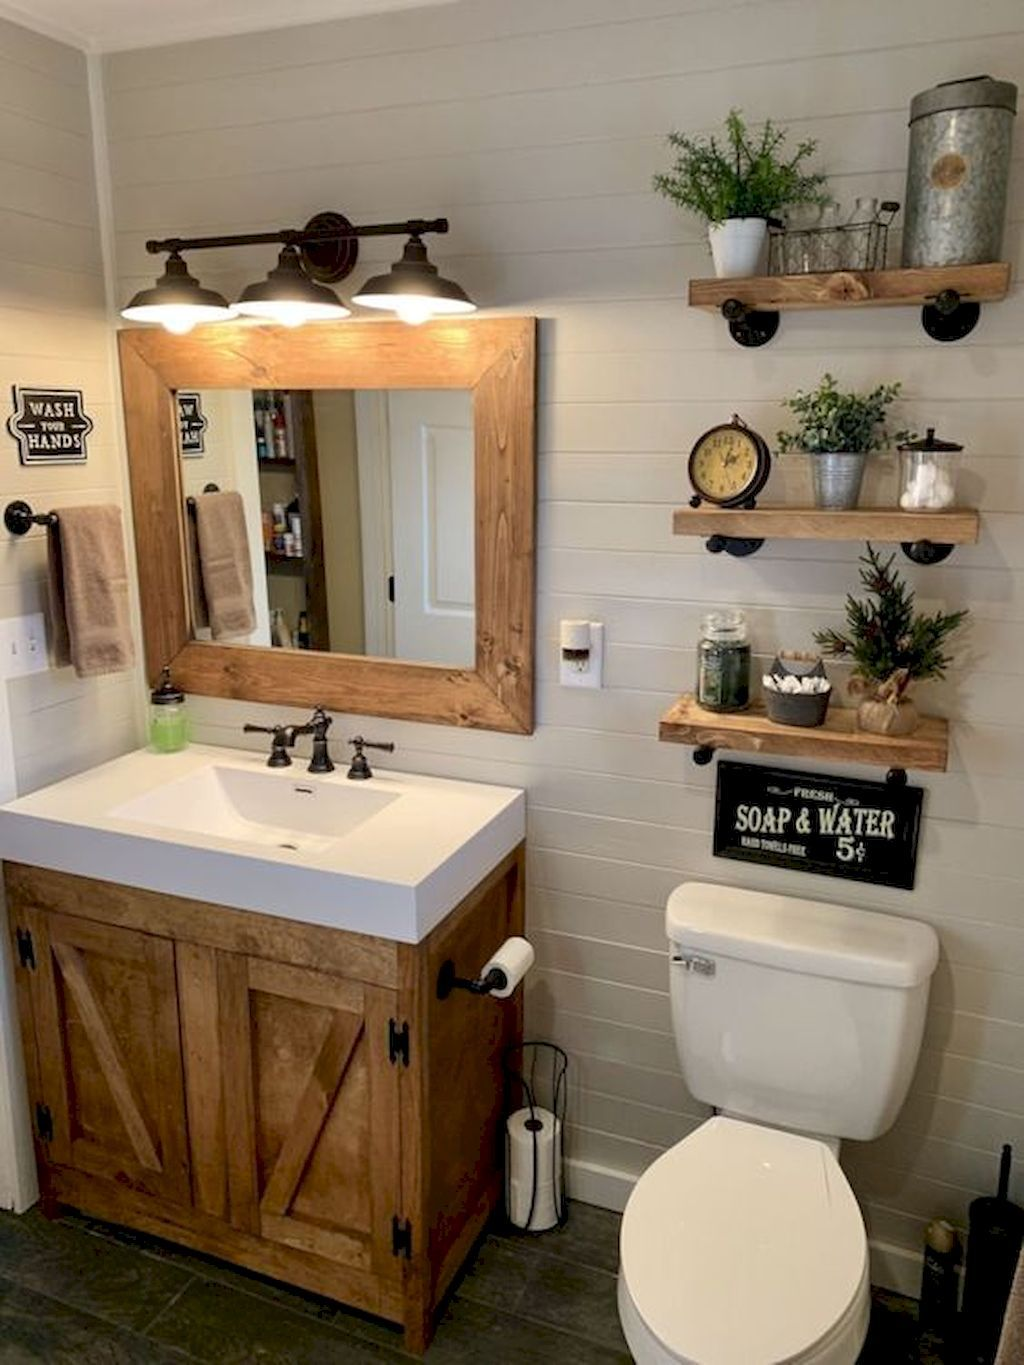 50 Stunning Farmhouse Bathroom Remodel Ideas On A Budget - HomeIdeas.co